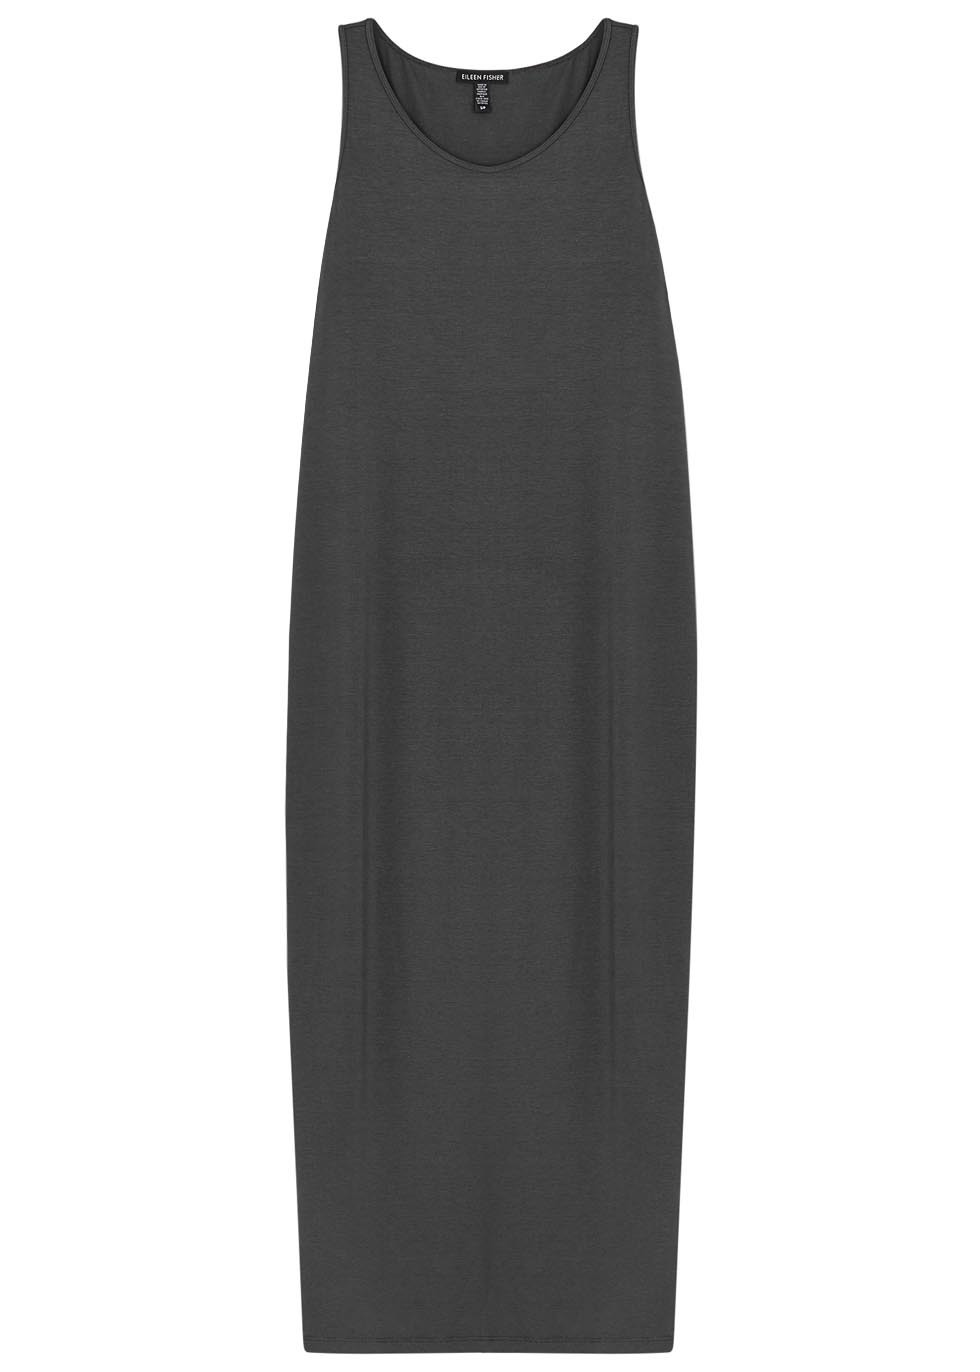 Grey Jersey Maxi Dress - neckline: round neck; pattern: plain; sleeve style: sleeveless; style: maxi dress; length: ankle length; predominant colour: charcoal; occasions: casual; fit: body skimming; fibres: viscose/rayon - stretch; sleeve length: sleeveless; pattern type: fabric; texture group: jersey - stretchy/drapey; season: s/s 2016